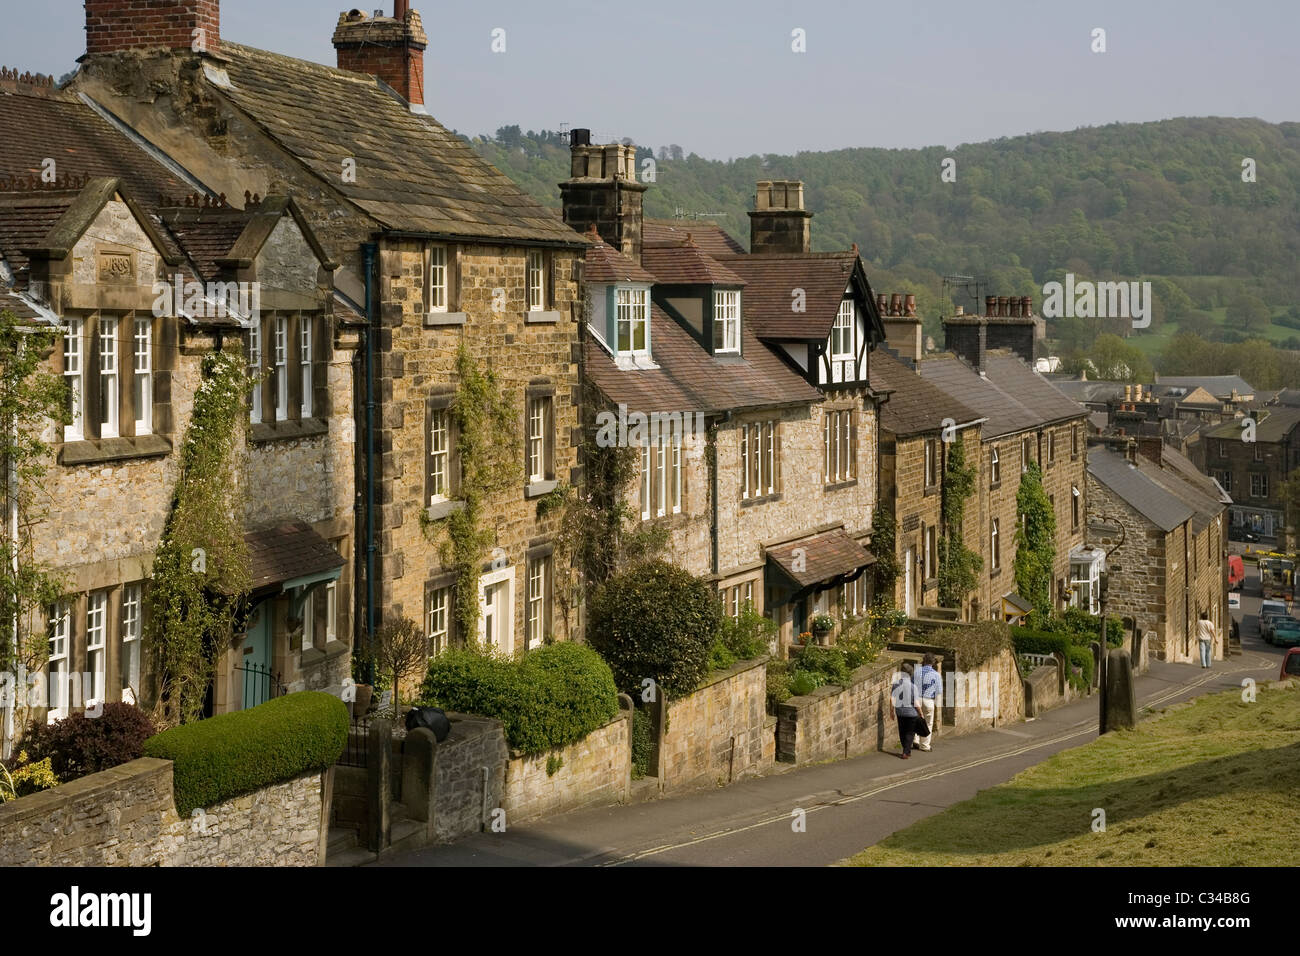 England Derbyshire Bakewell North church street - Stock Image